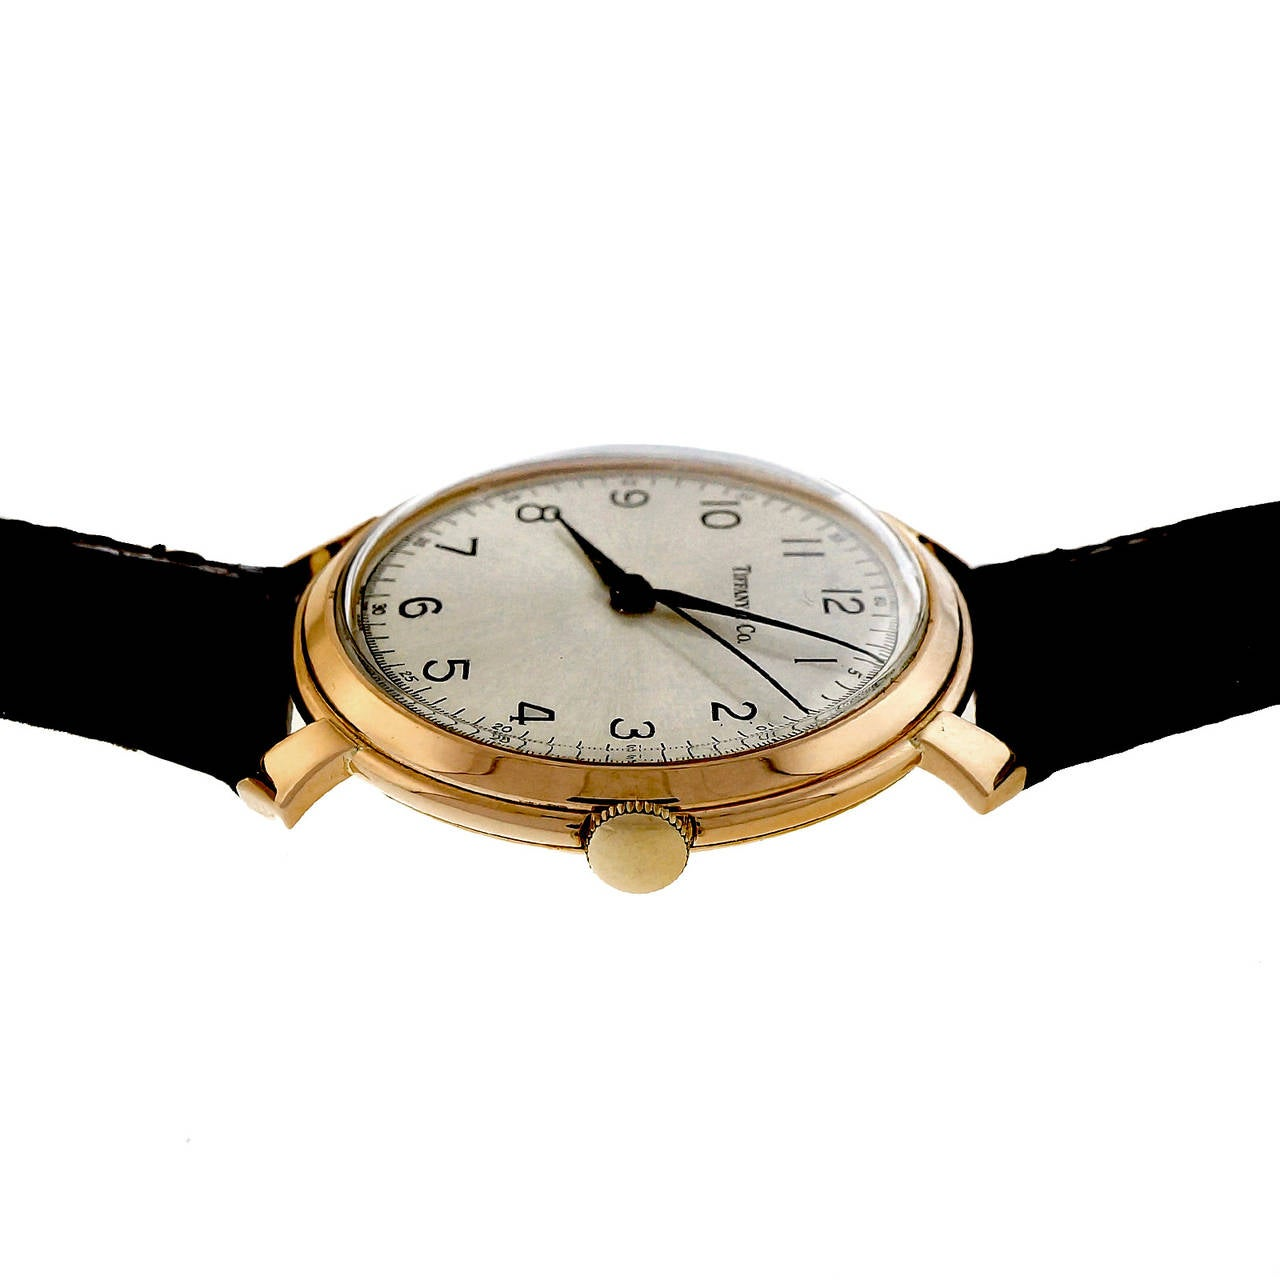 IWC Rose Gold Wristwatch Retailed by Tiffany & Co. 5